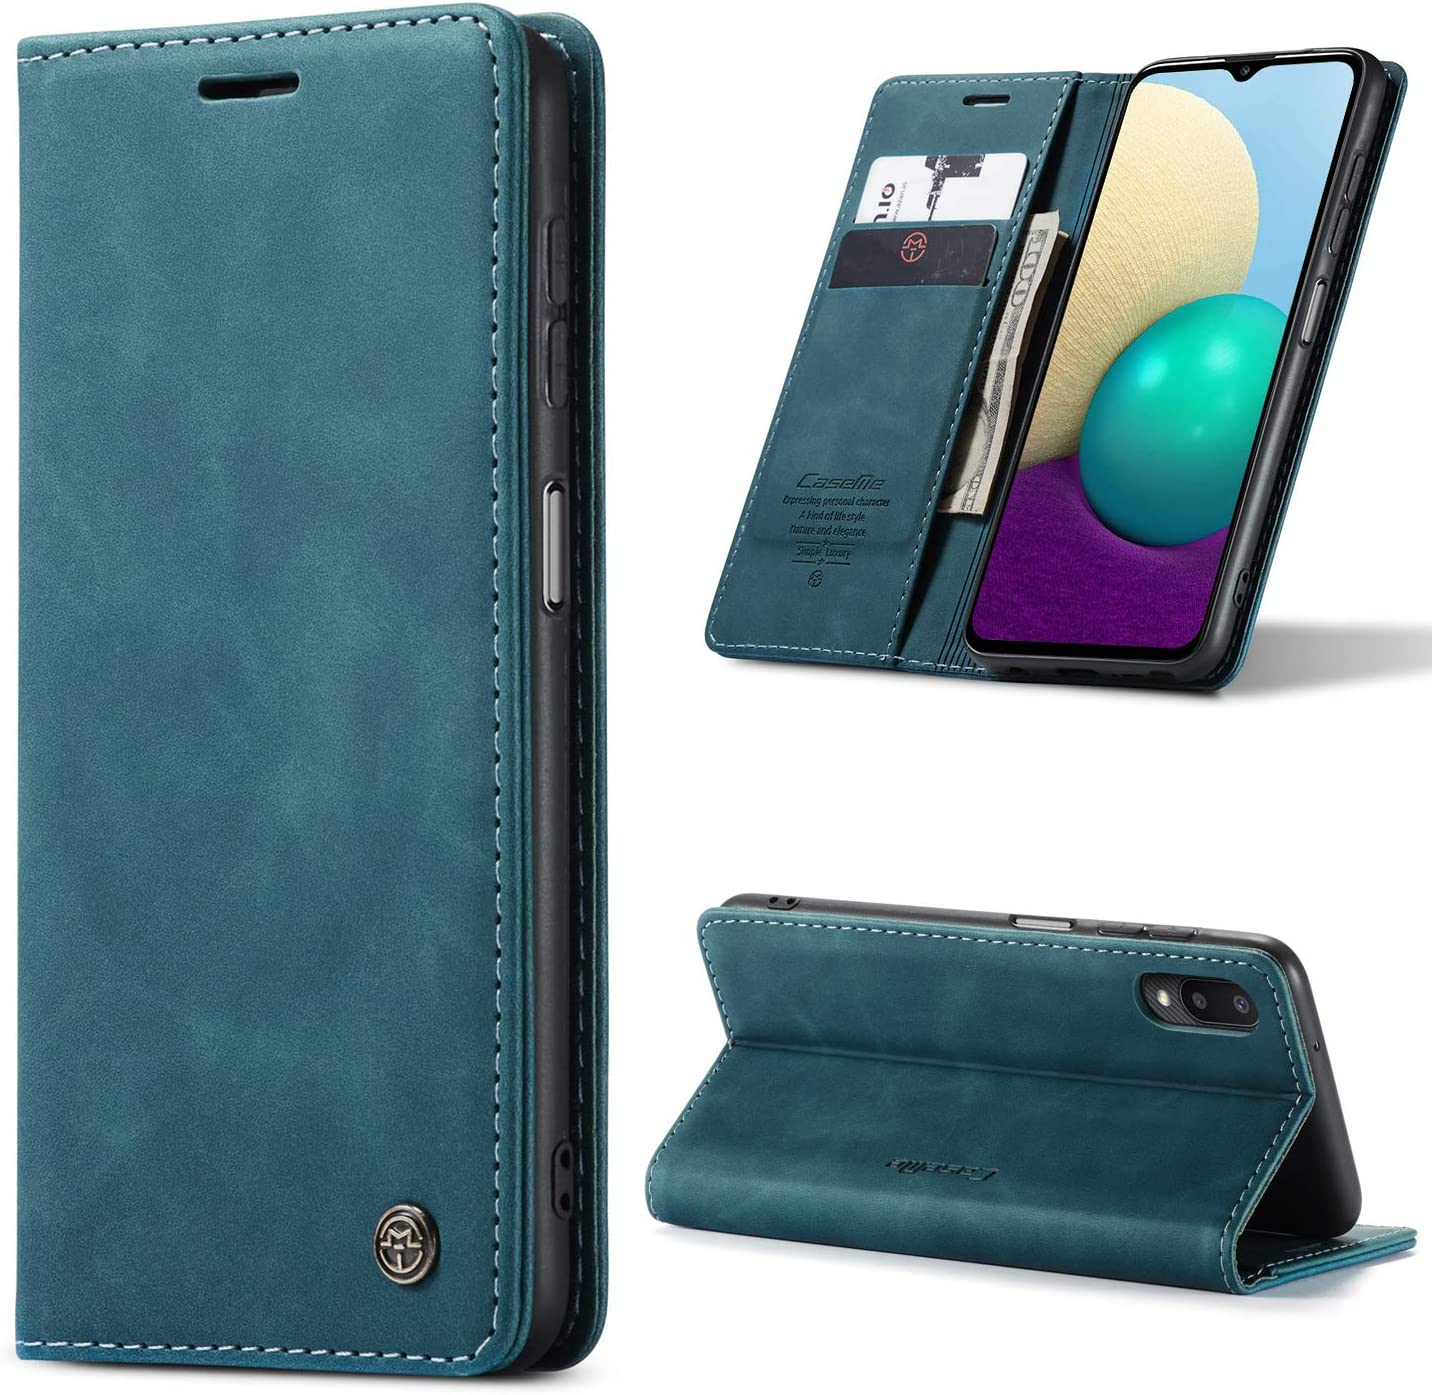 Kowauri Flip Case for Samsung Galaxy A02,Leather Wallet Case Classic Design with Card Slot and Magnetic Closure Flip Fold Case for Samsung Galaxy M02/Samsung Galaxy A02 (Teal)